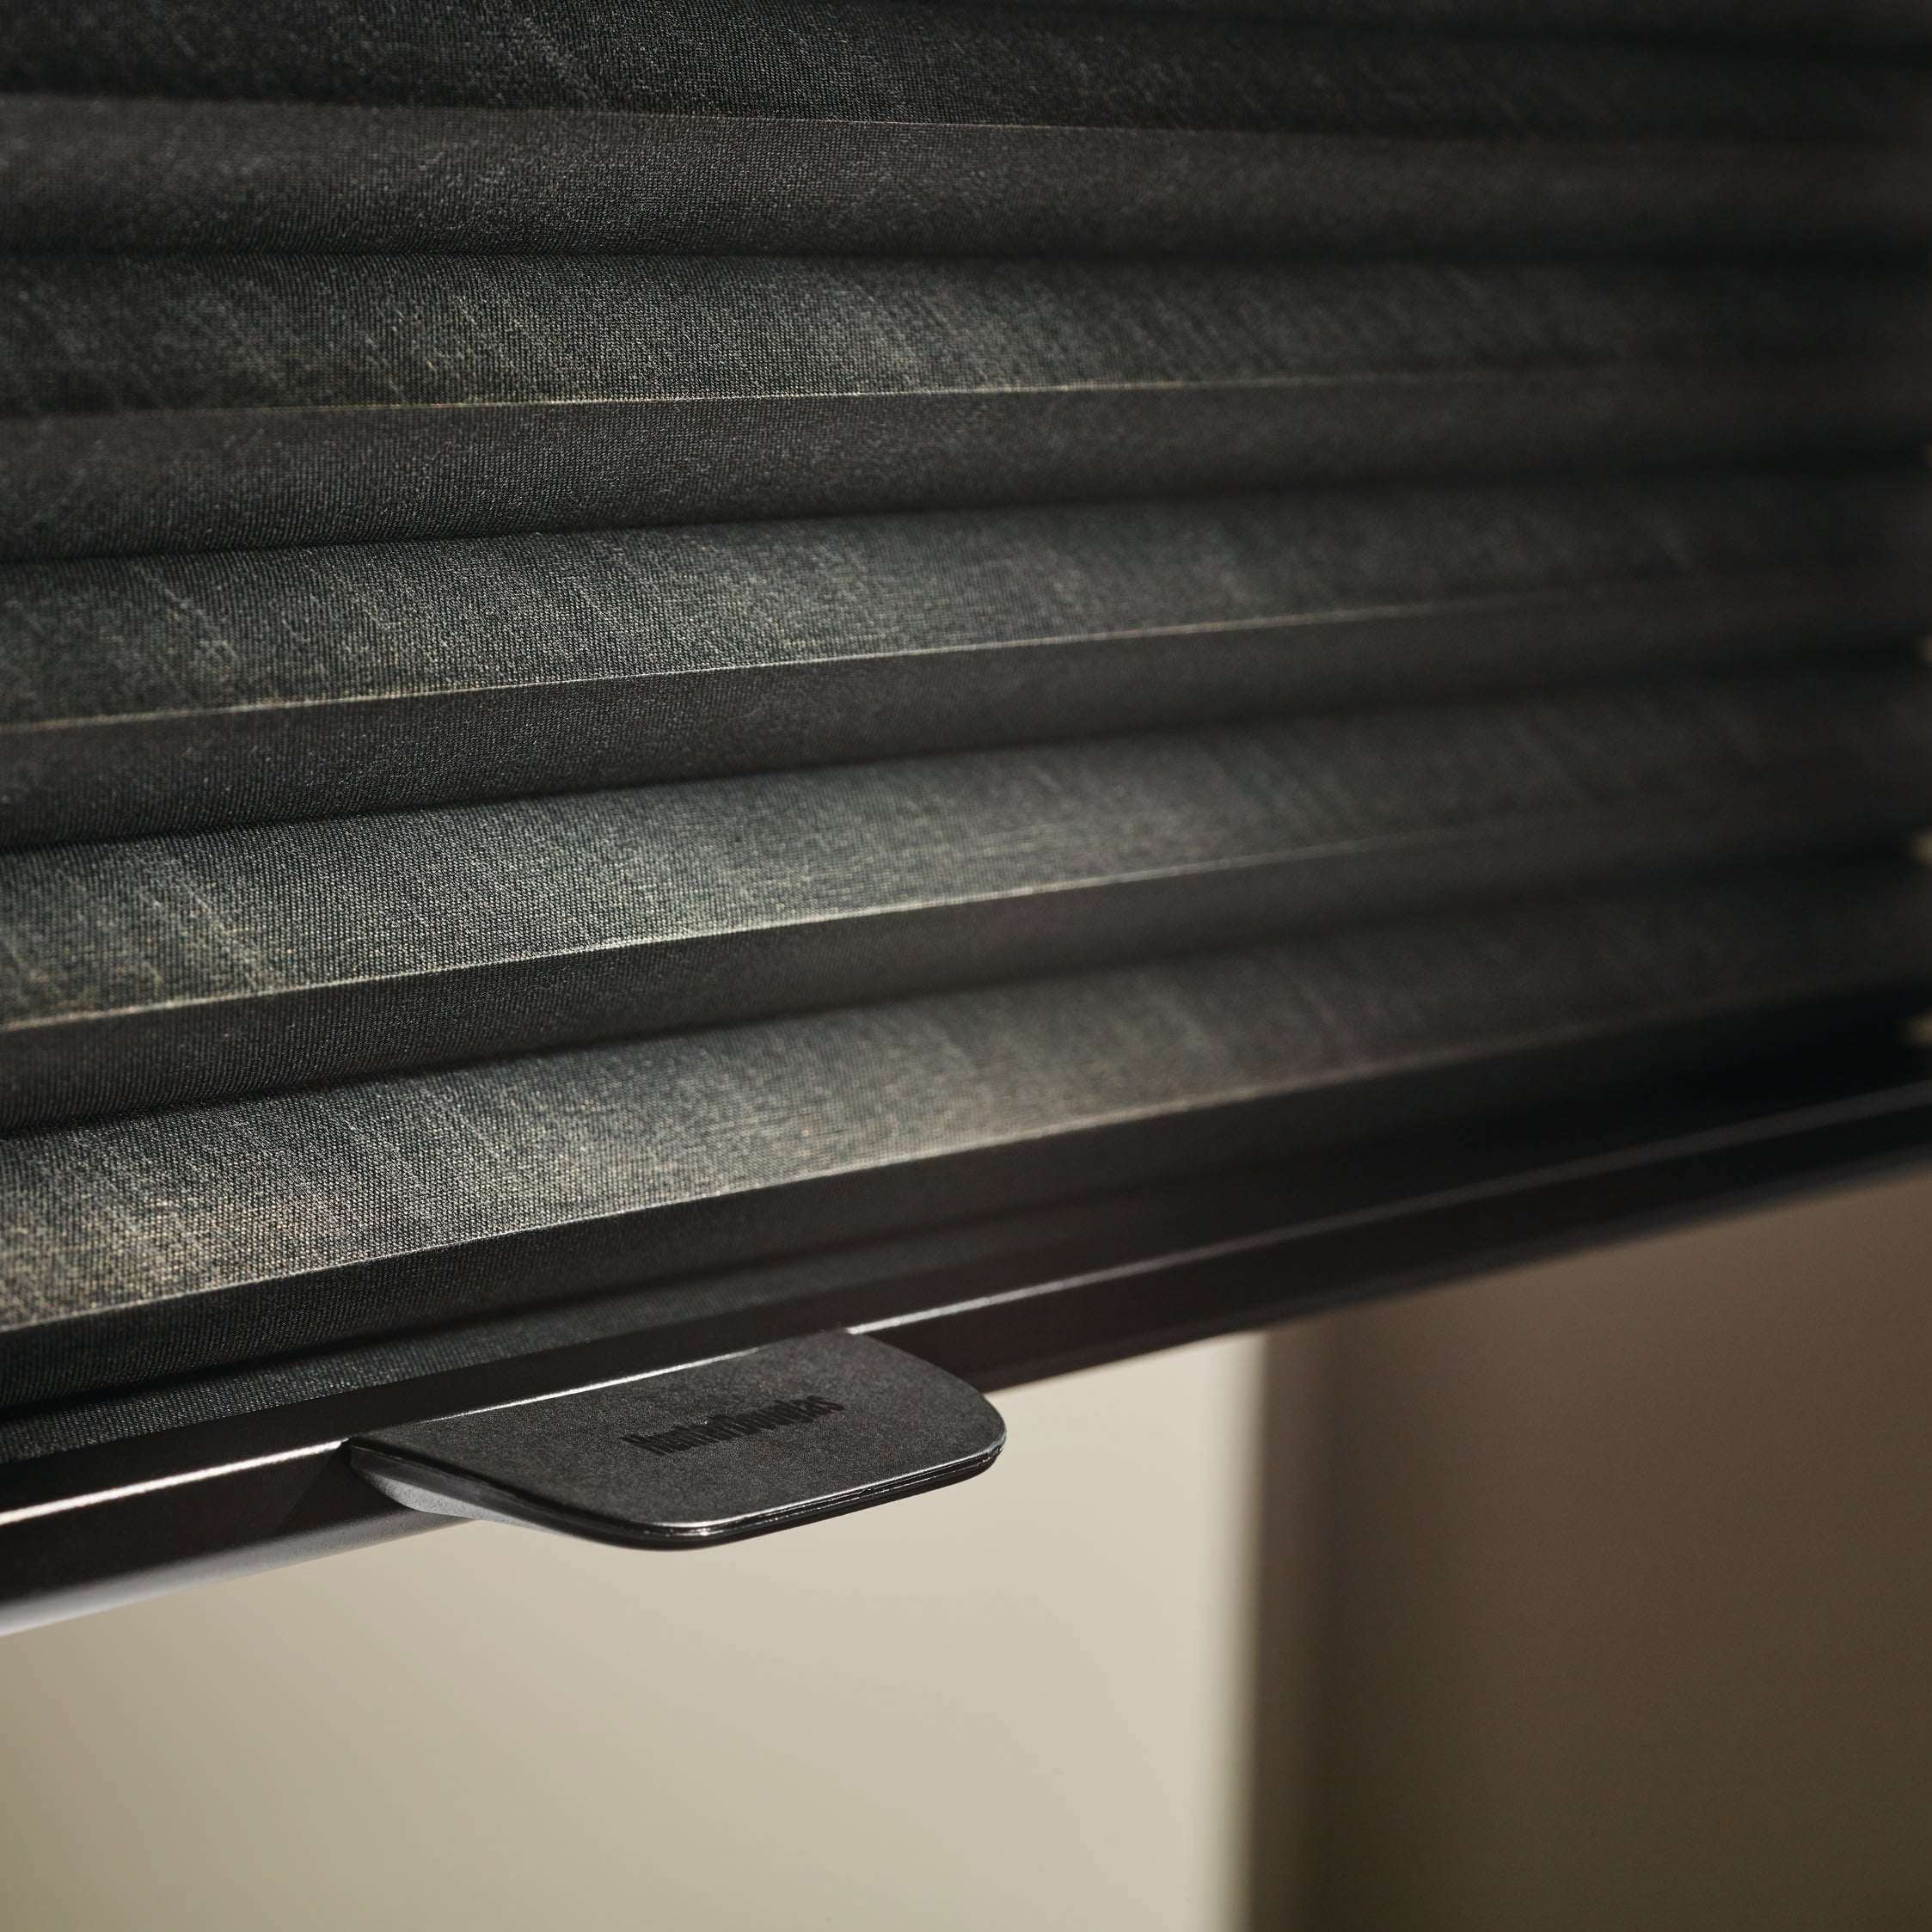 Barrydowne Paint offers Hunter Douglas with LiteRise systems, Sudbury, ON.